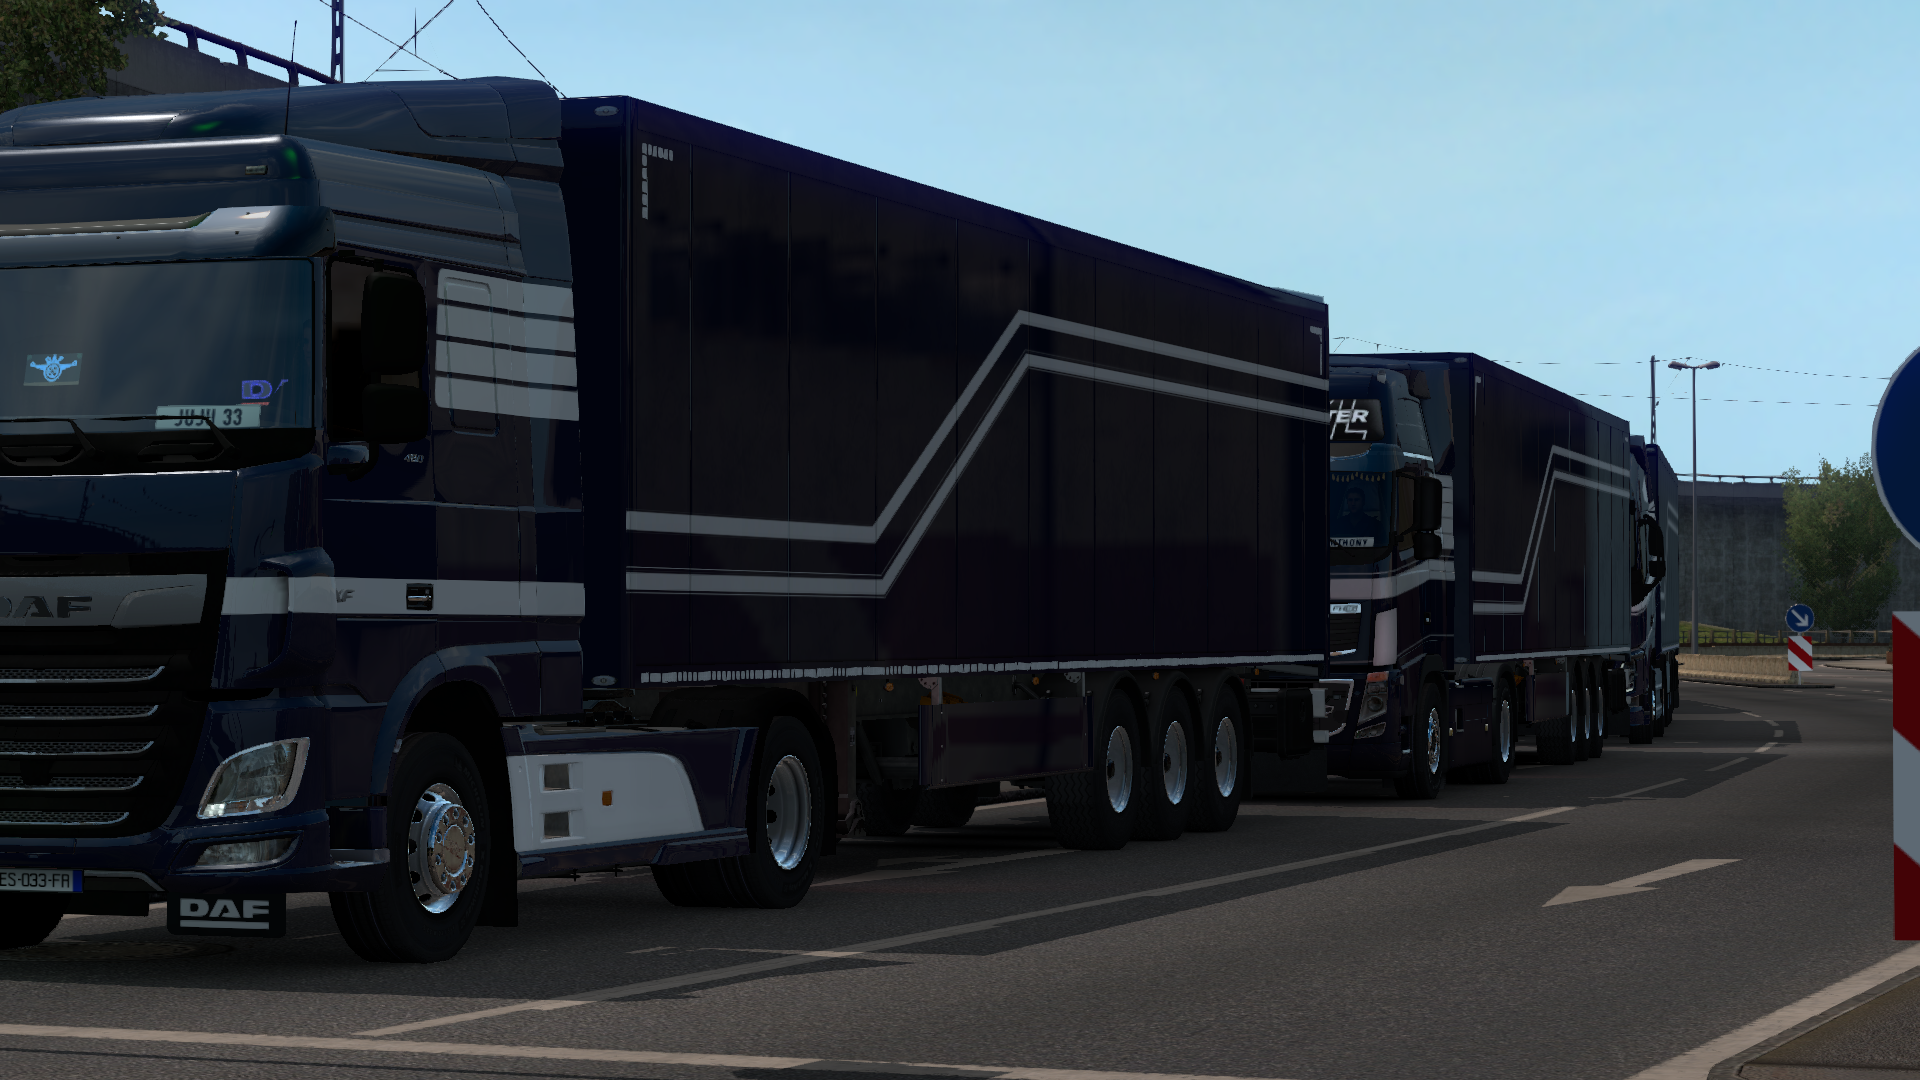 ets2_20180929_233132_00.png